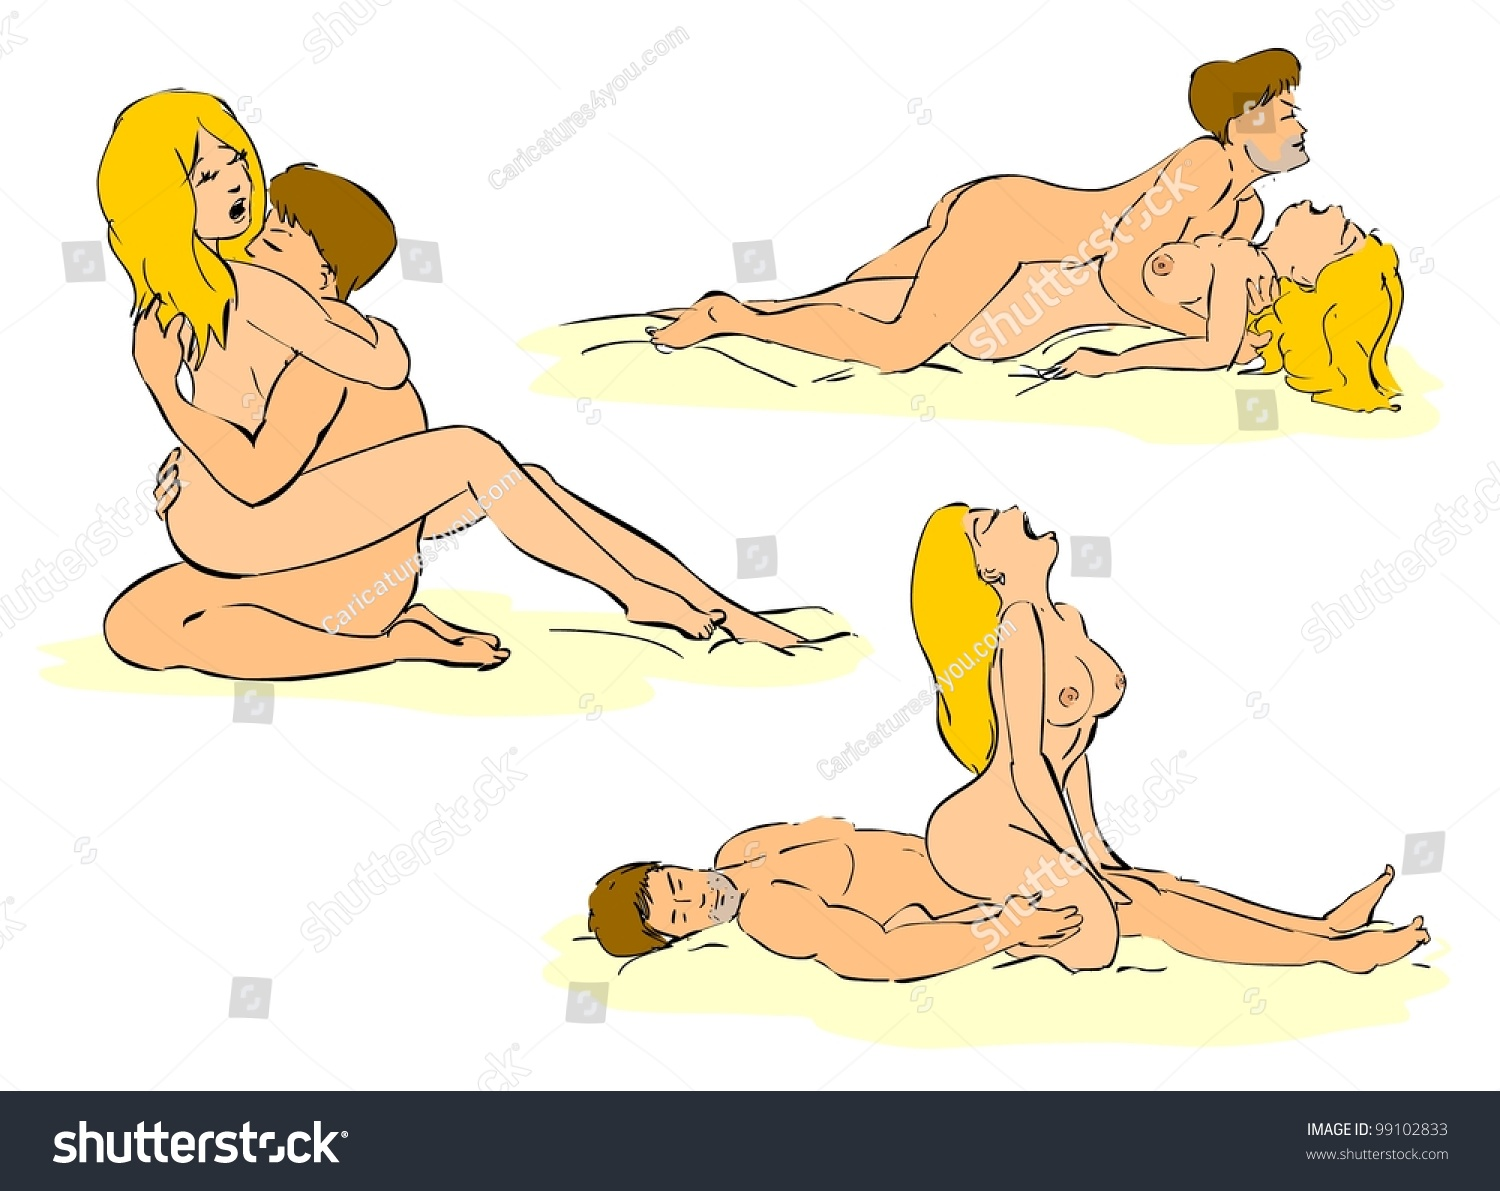 three somes sex postions